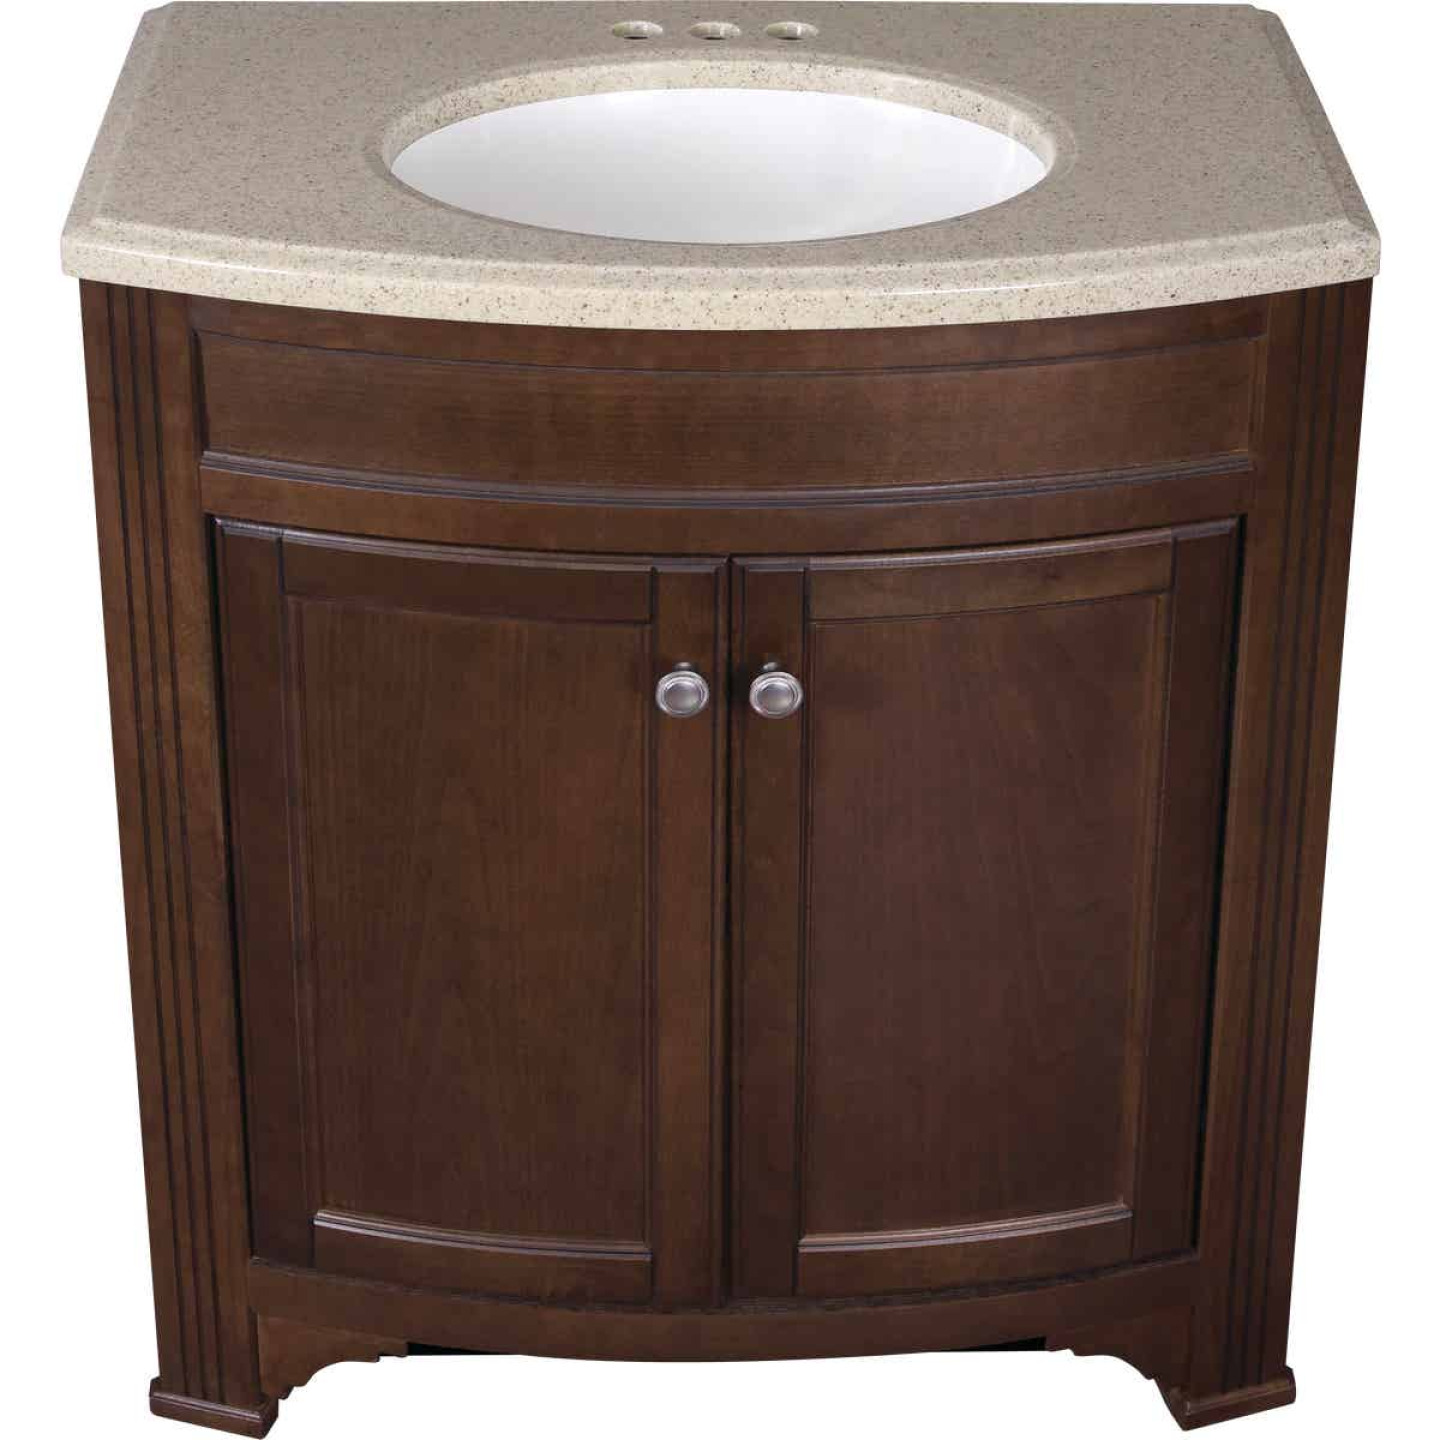 Continental Cabinets Duvall Cafe Black Glaze 30-3/4 In. W x 34-3/4 In. H x 18-1/2 In. D Vanity with Tan/Wht Cultured Marble Top Image 3